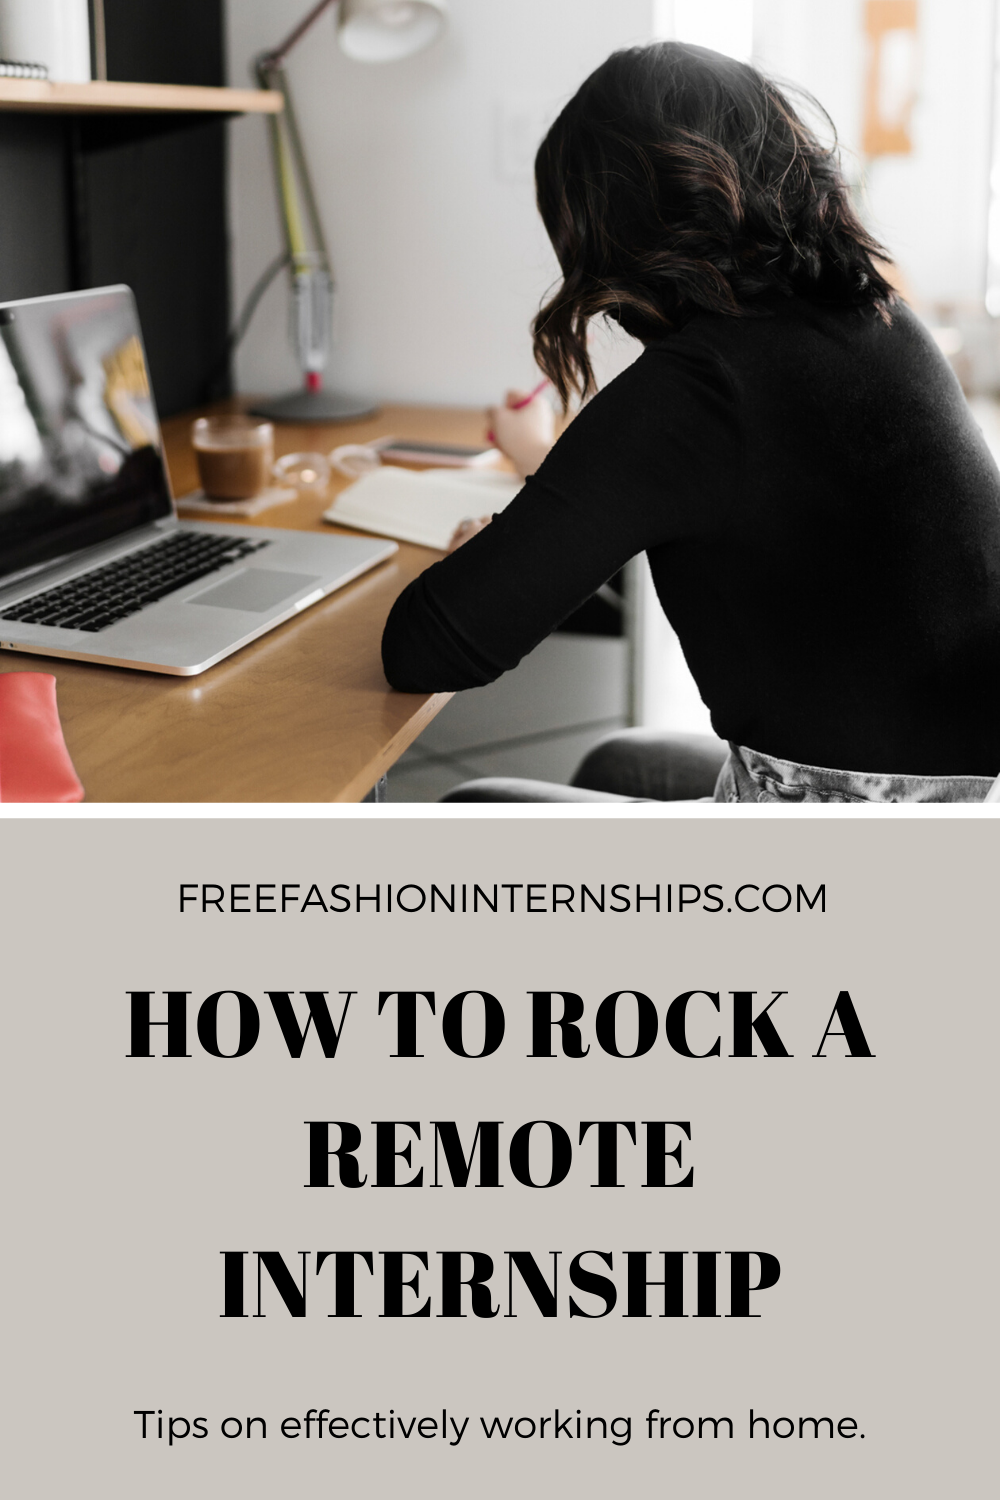 How To Rock A Remote Internship In 2020 Internship Working From Home Remote